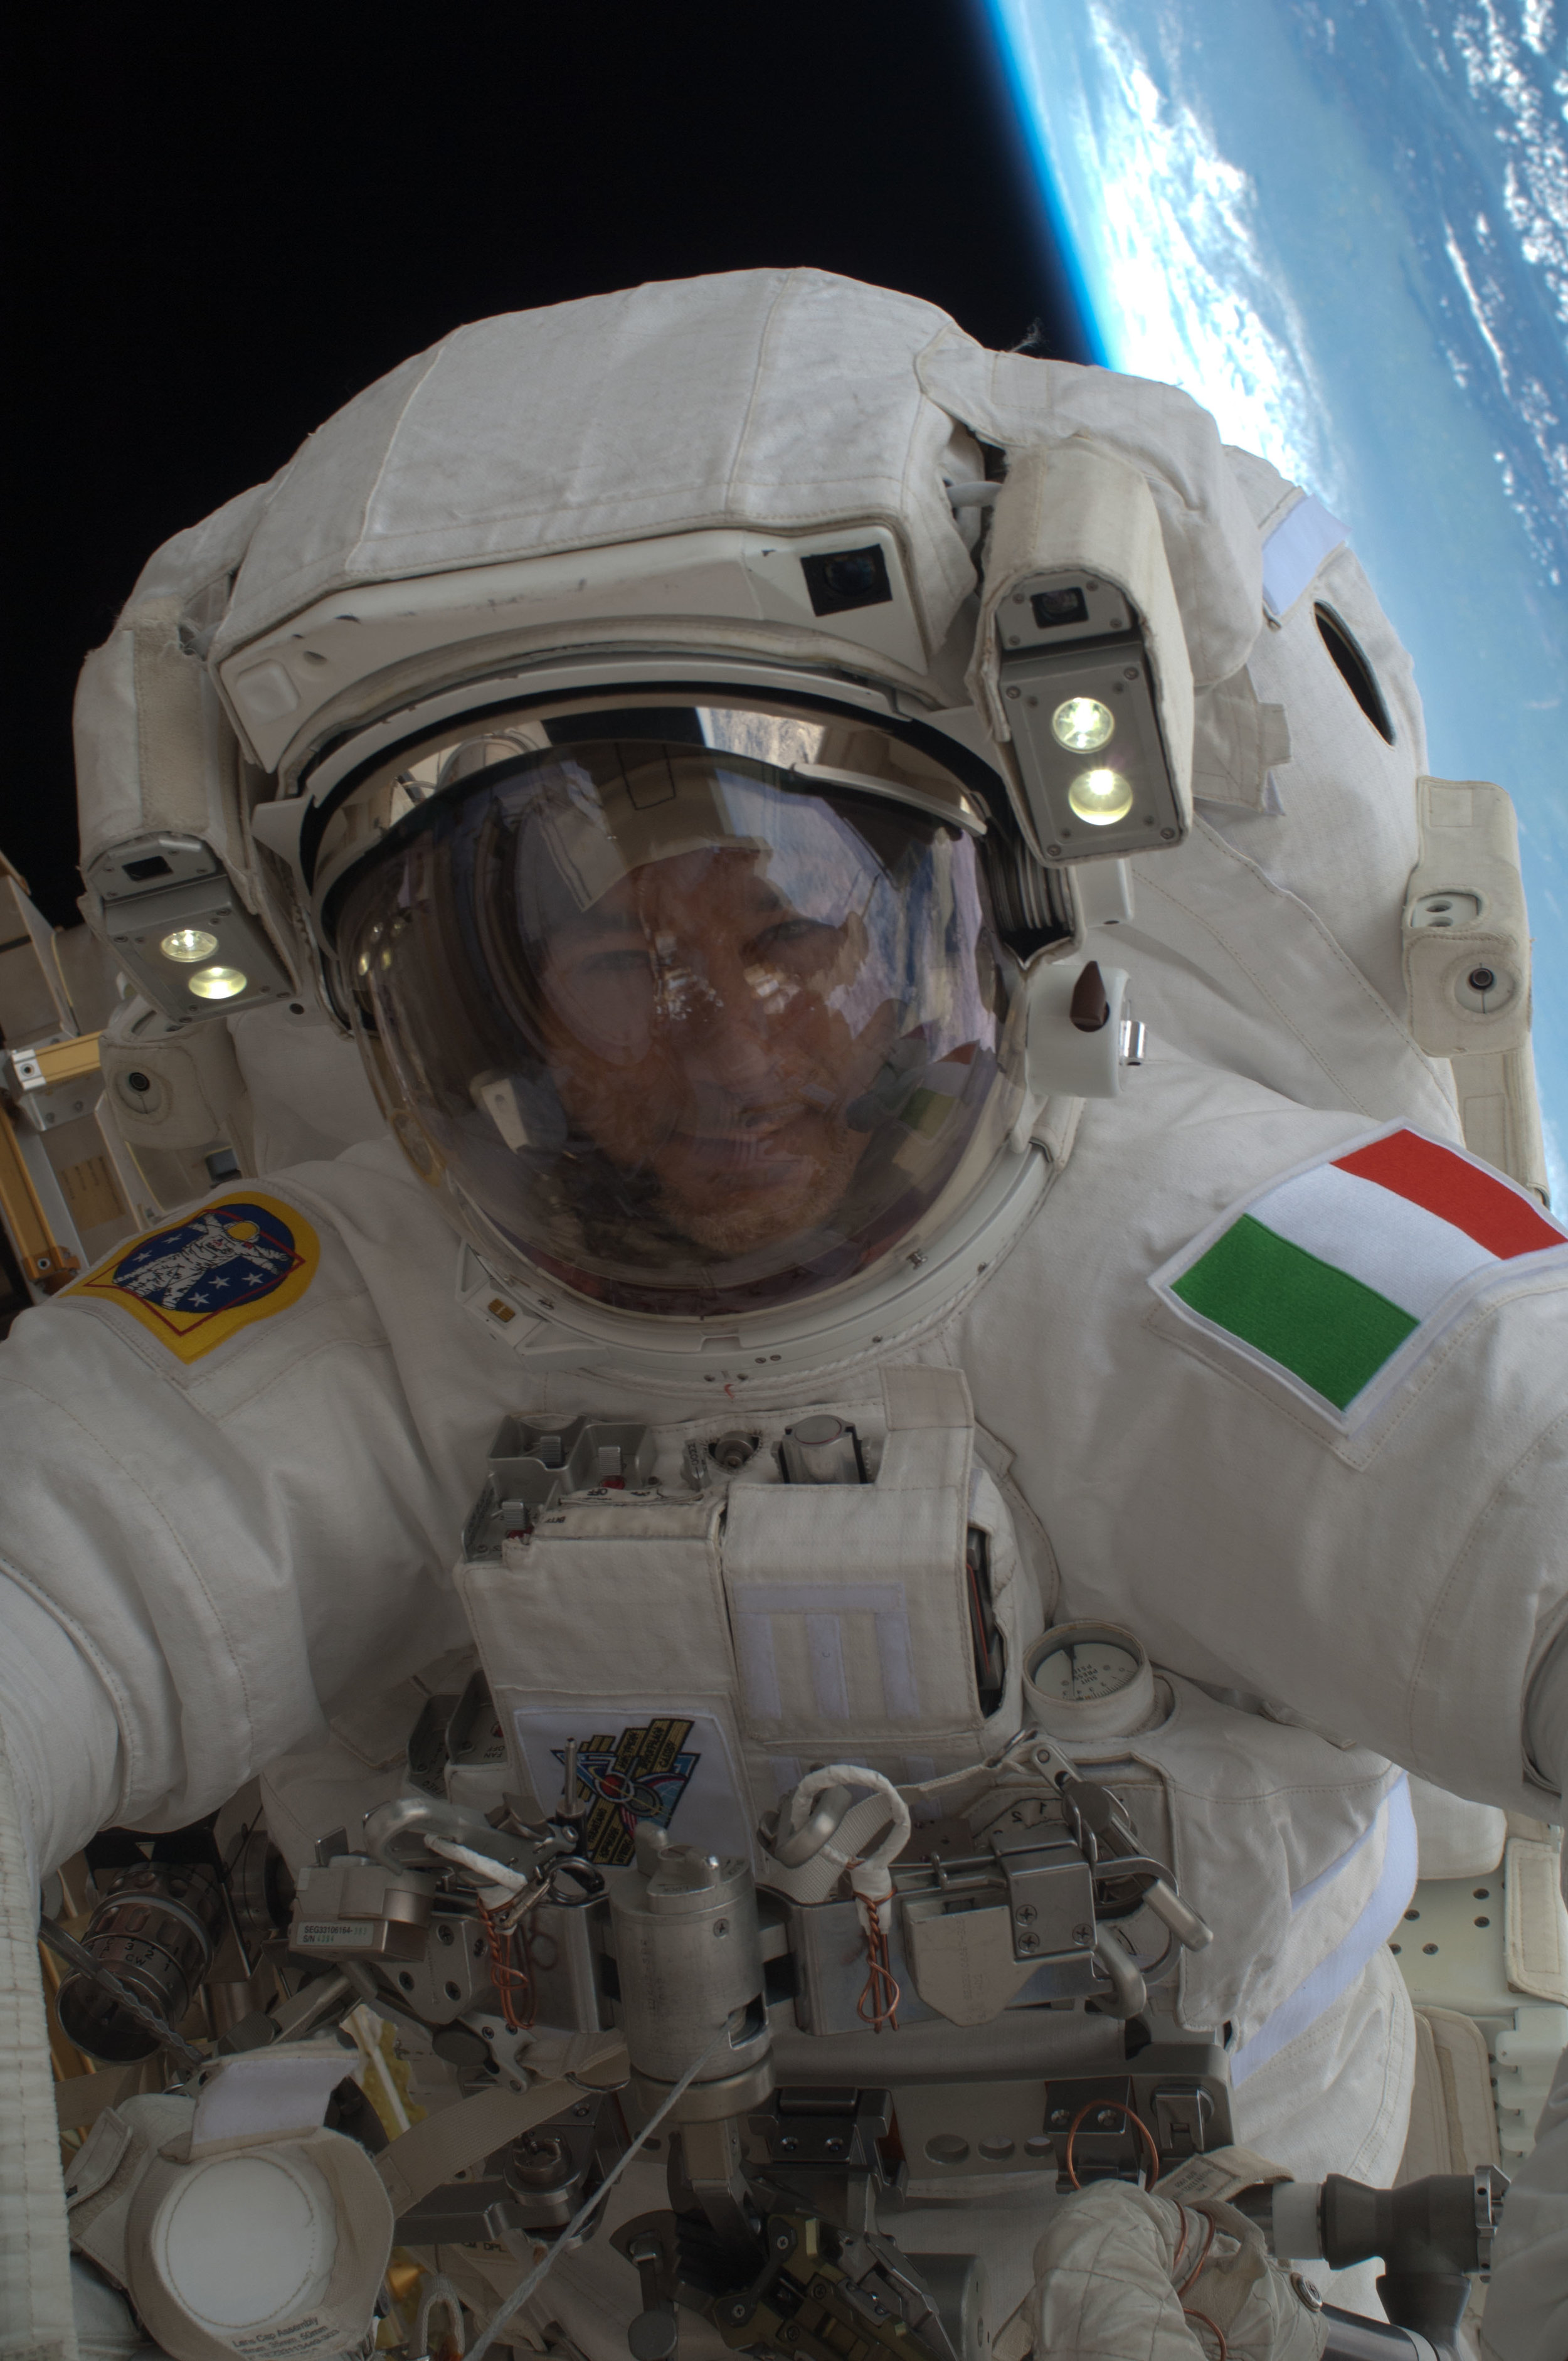 Luca Parmitano during a space walk in 2013.